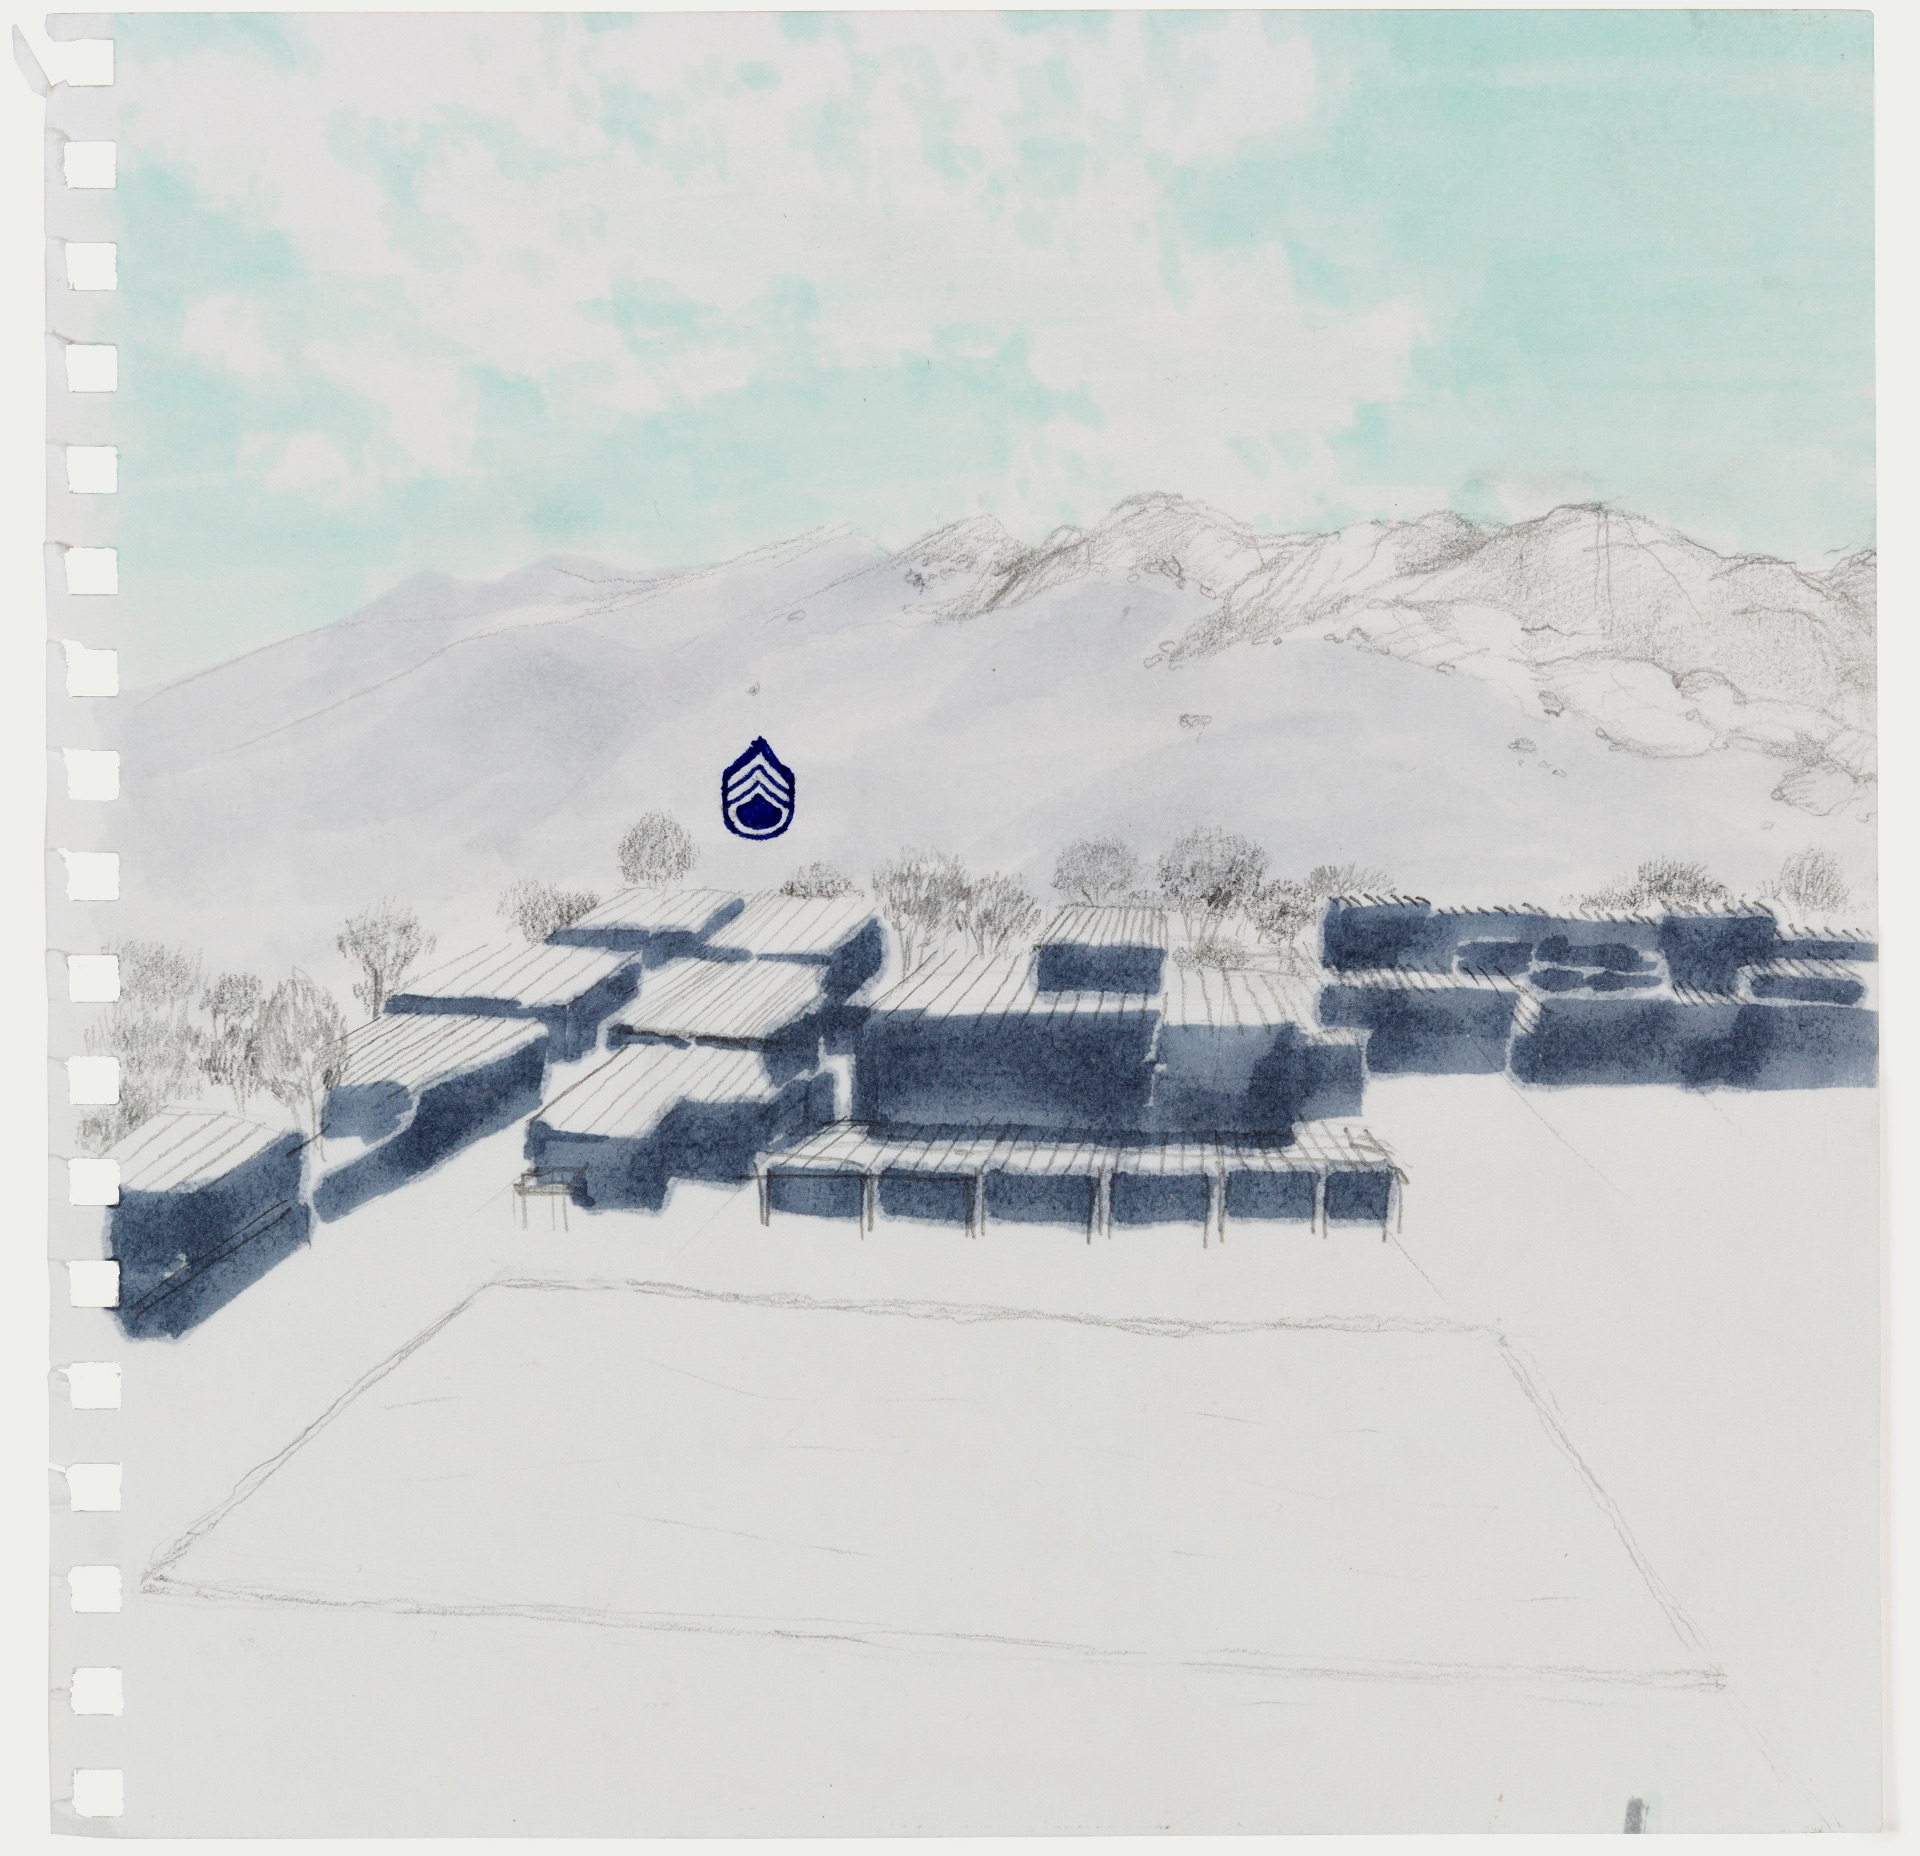 """Jena Lee, """"View from the Ridge with Platoon Leader's Location,"""" DICE-T, USC Institute for Creative Technologies, Los Angeles, CA, 2013. Graphite, alcohol marker, xylene marker, and ink on paper."""